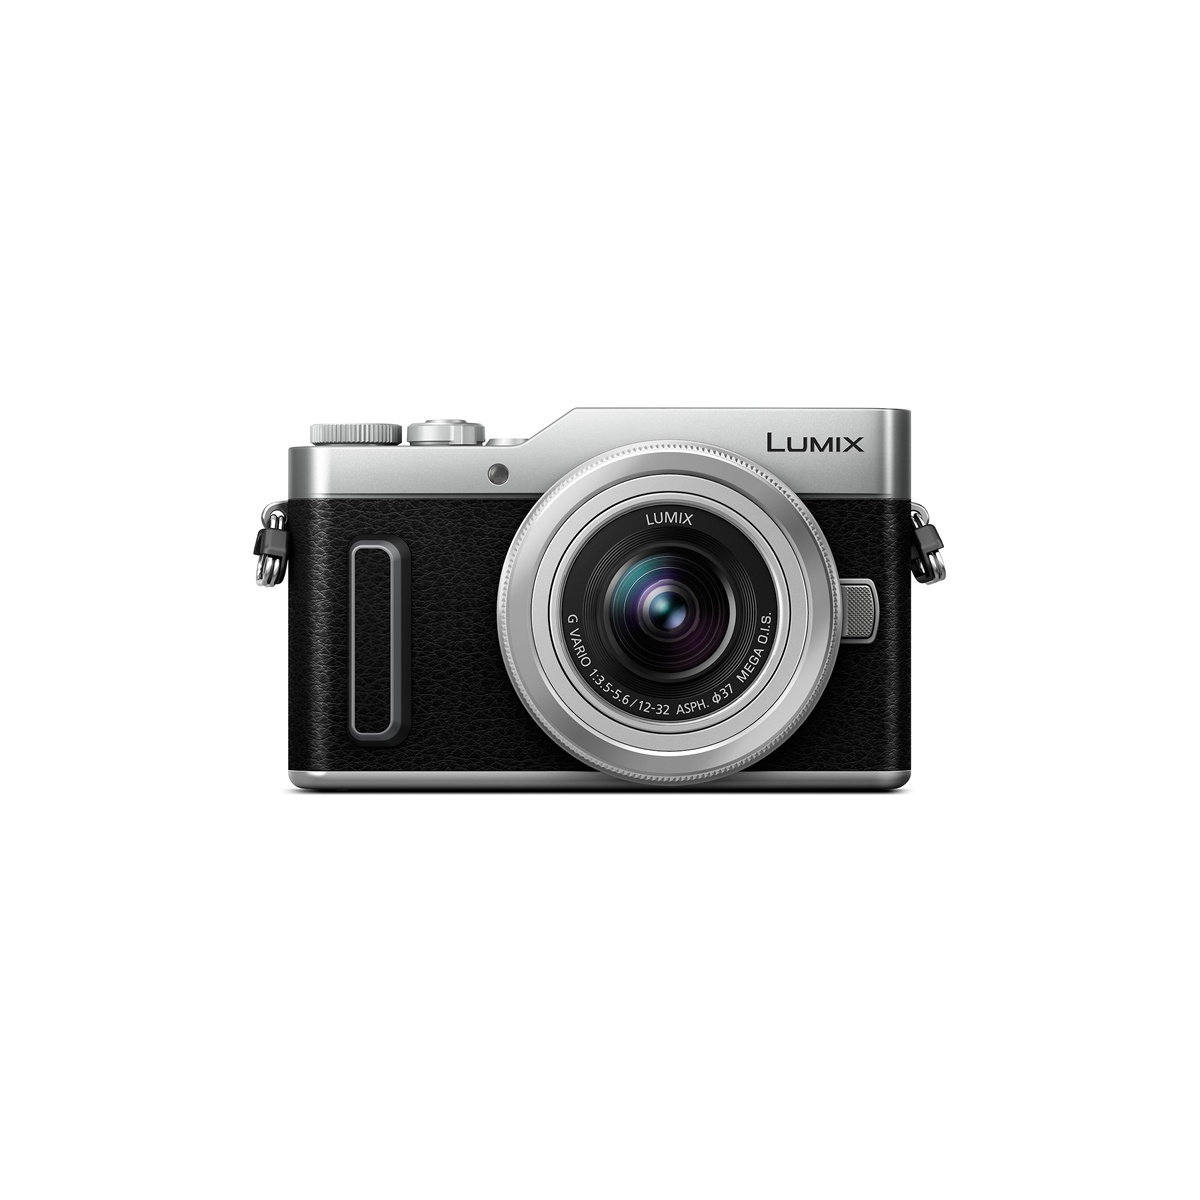 Panasonic DC-GX880 Kit mit 12-32 mm 1:3,5-5,6